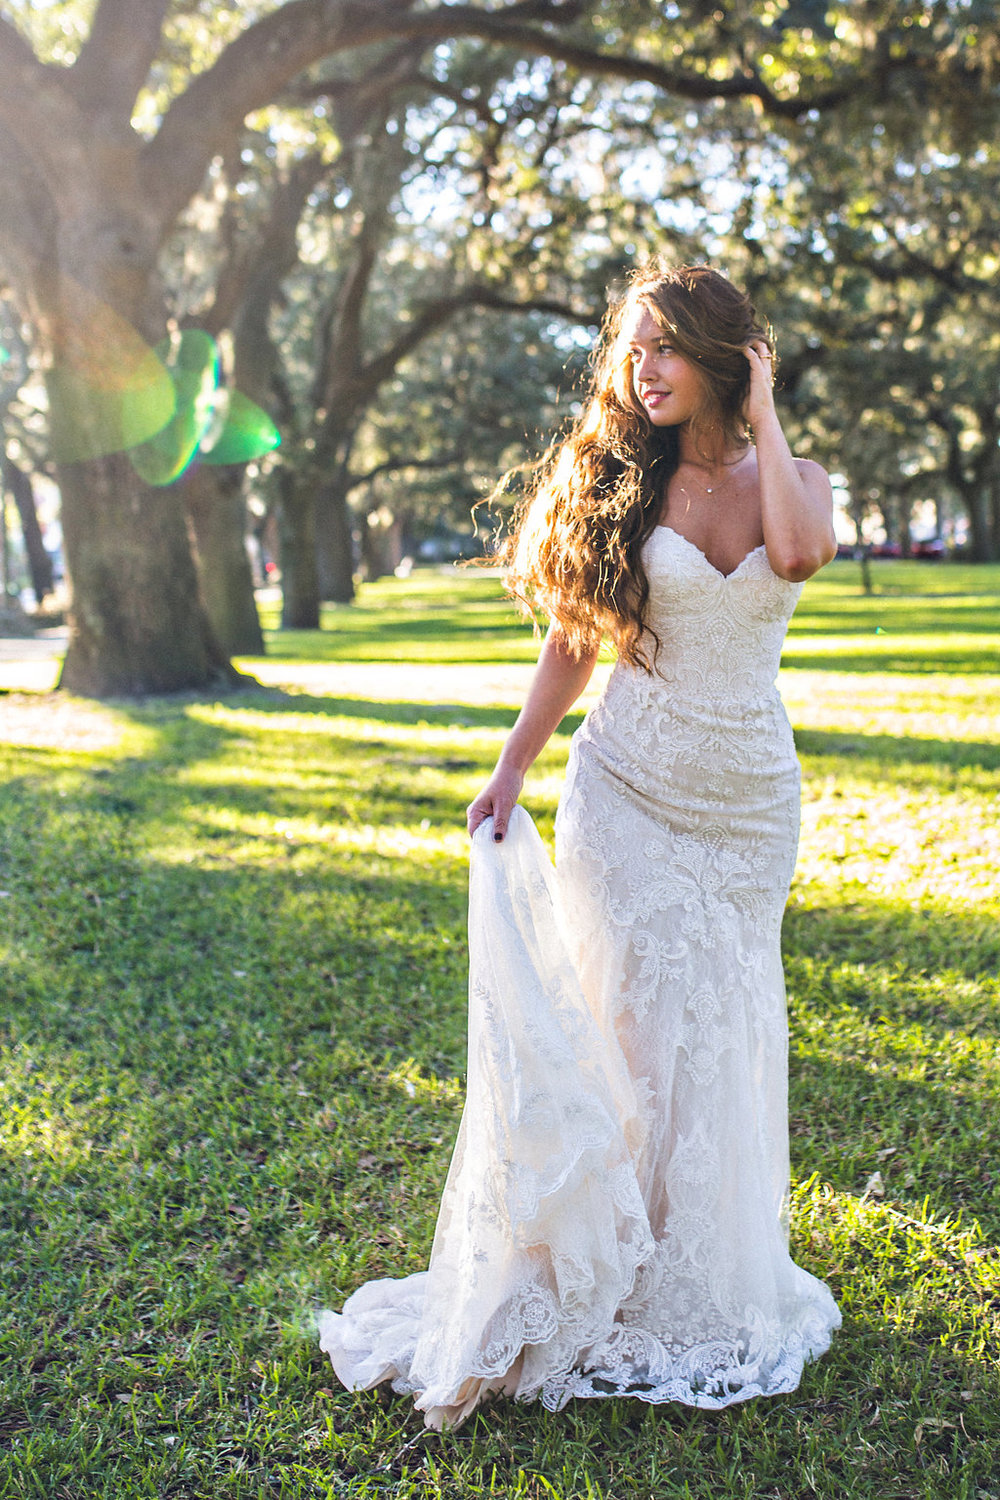 alexis-sweet-photography-ivory-and-beau-bridal-boutique-mirelle--maggie-sottero-rebecca-ingram-lace-mermaid-savannah-wedding-savannah-square-wedding-flower-crown-boho-bride-savannah-wedding-planner-savannah-bridal-boutique-savannah-florist-1.jpg